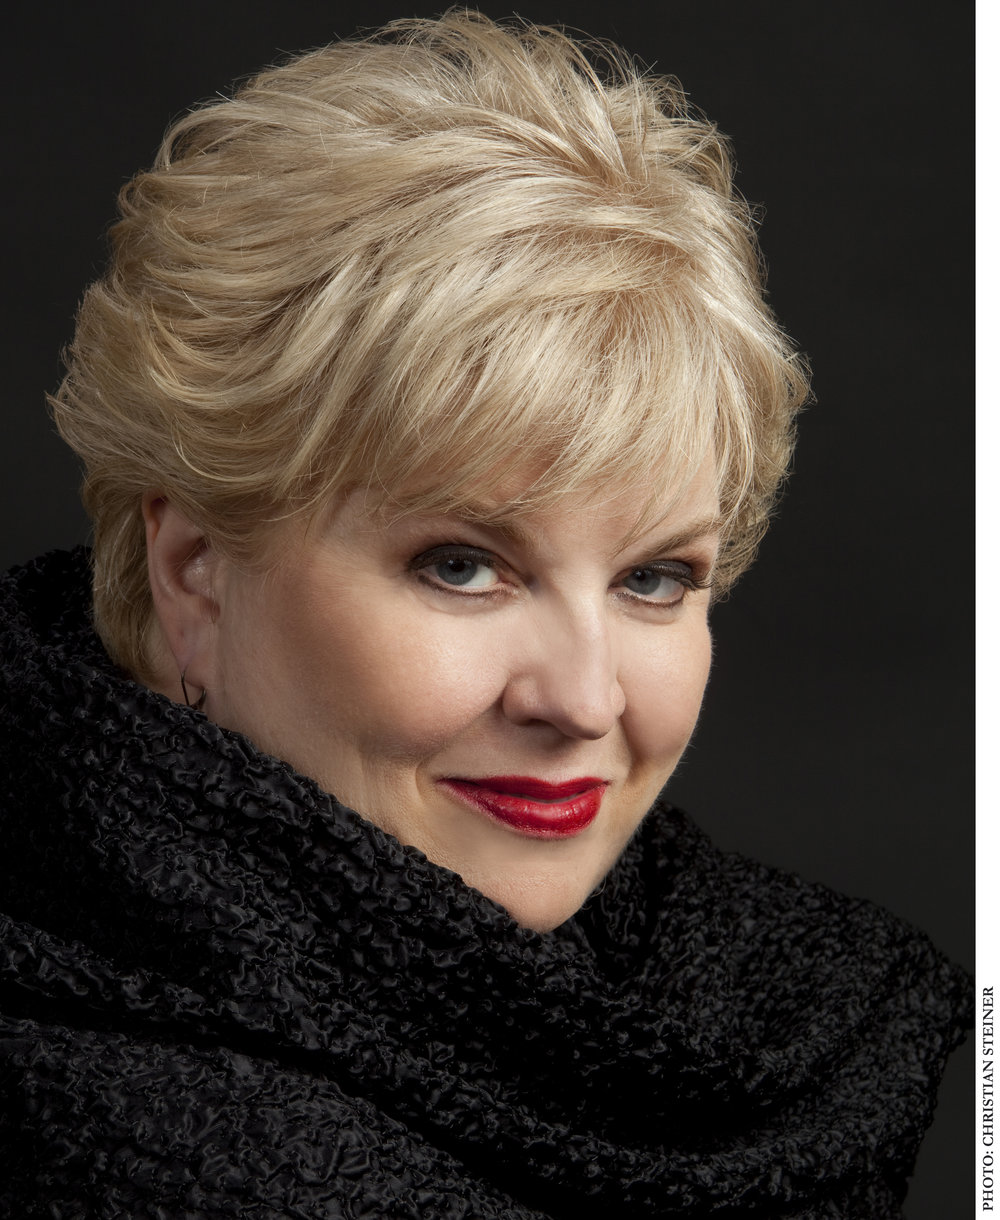 Christine Brewer, American Grammy Award-winning soprano